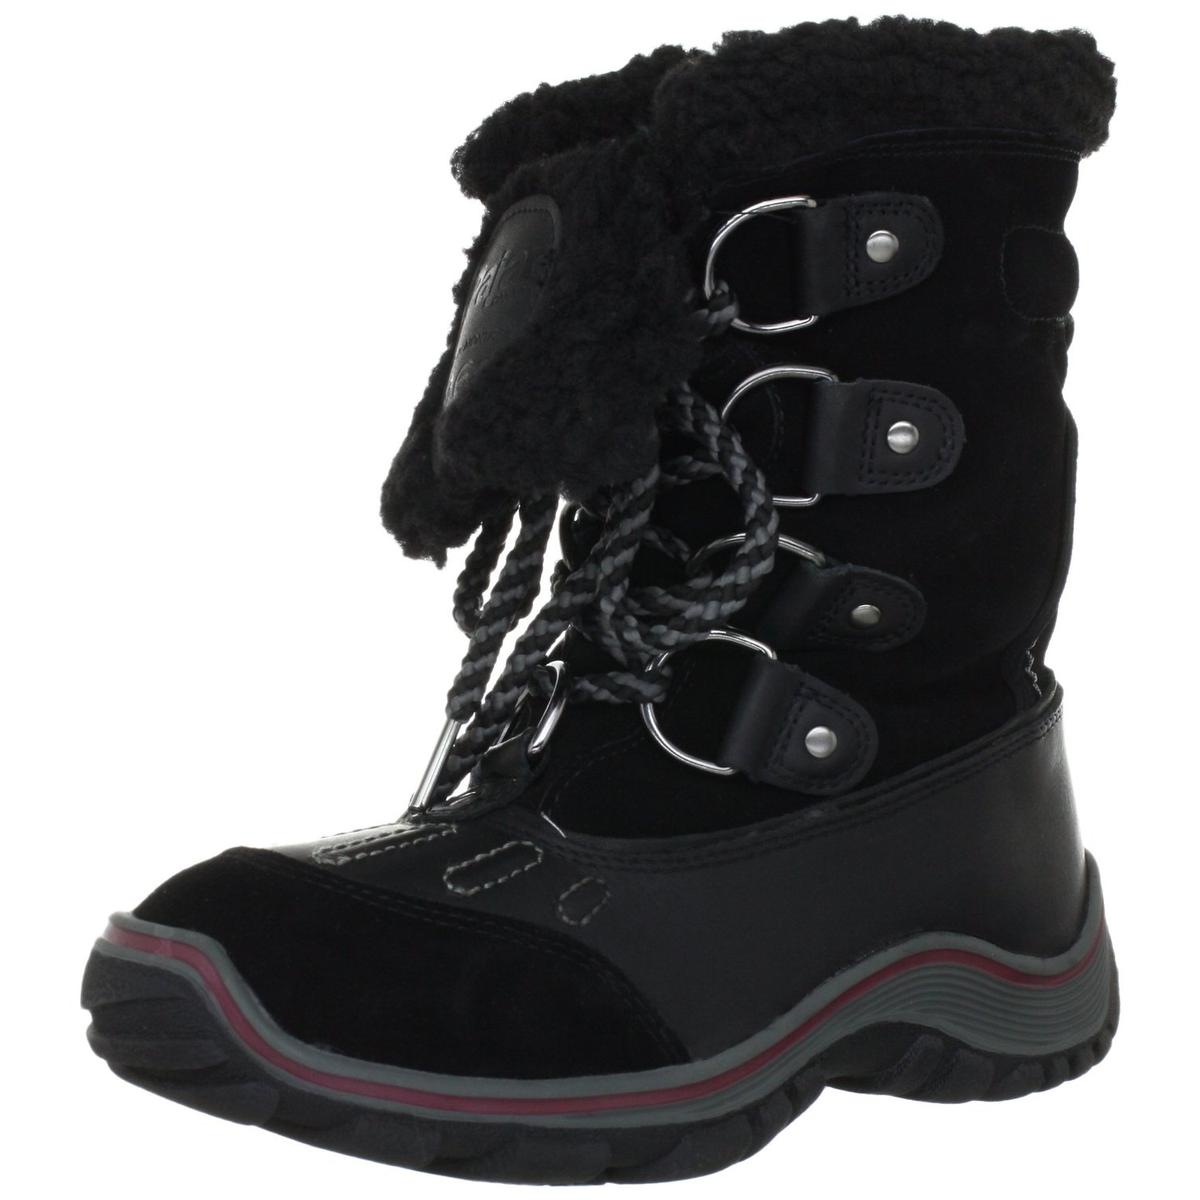 Pajar Womens Alina Leather Waterproof Snow Boots by Pajar